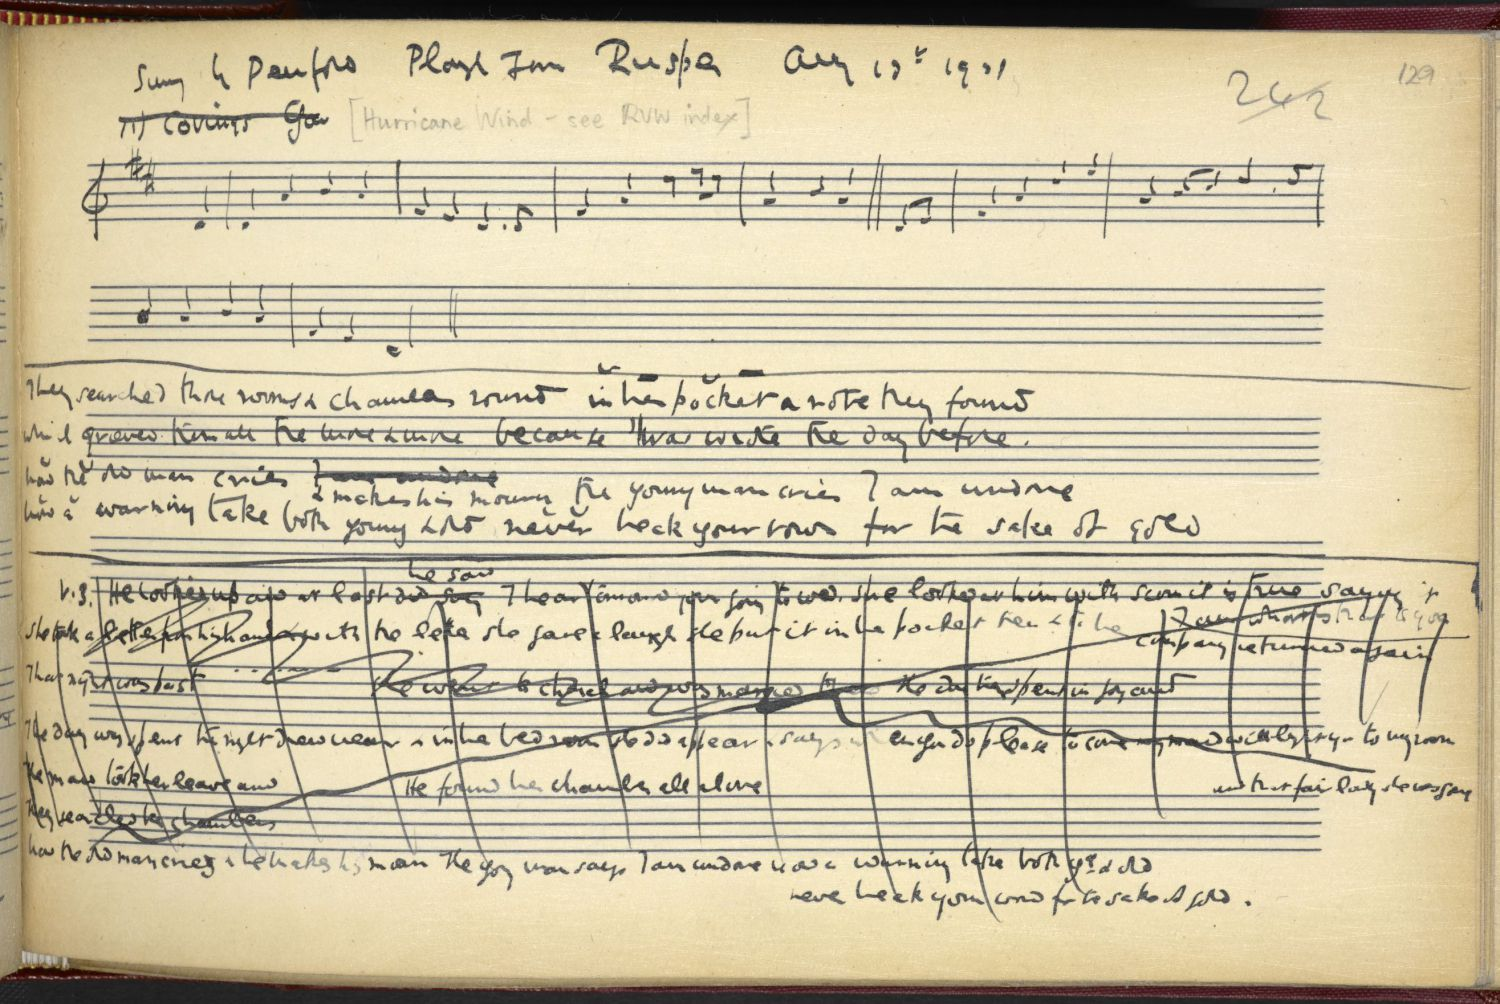 Hurricane Wind, page 2. From Ralph Vaughan Williams' notebook, via the Full English.